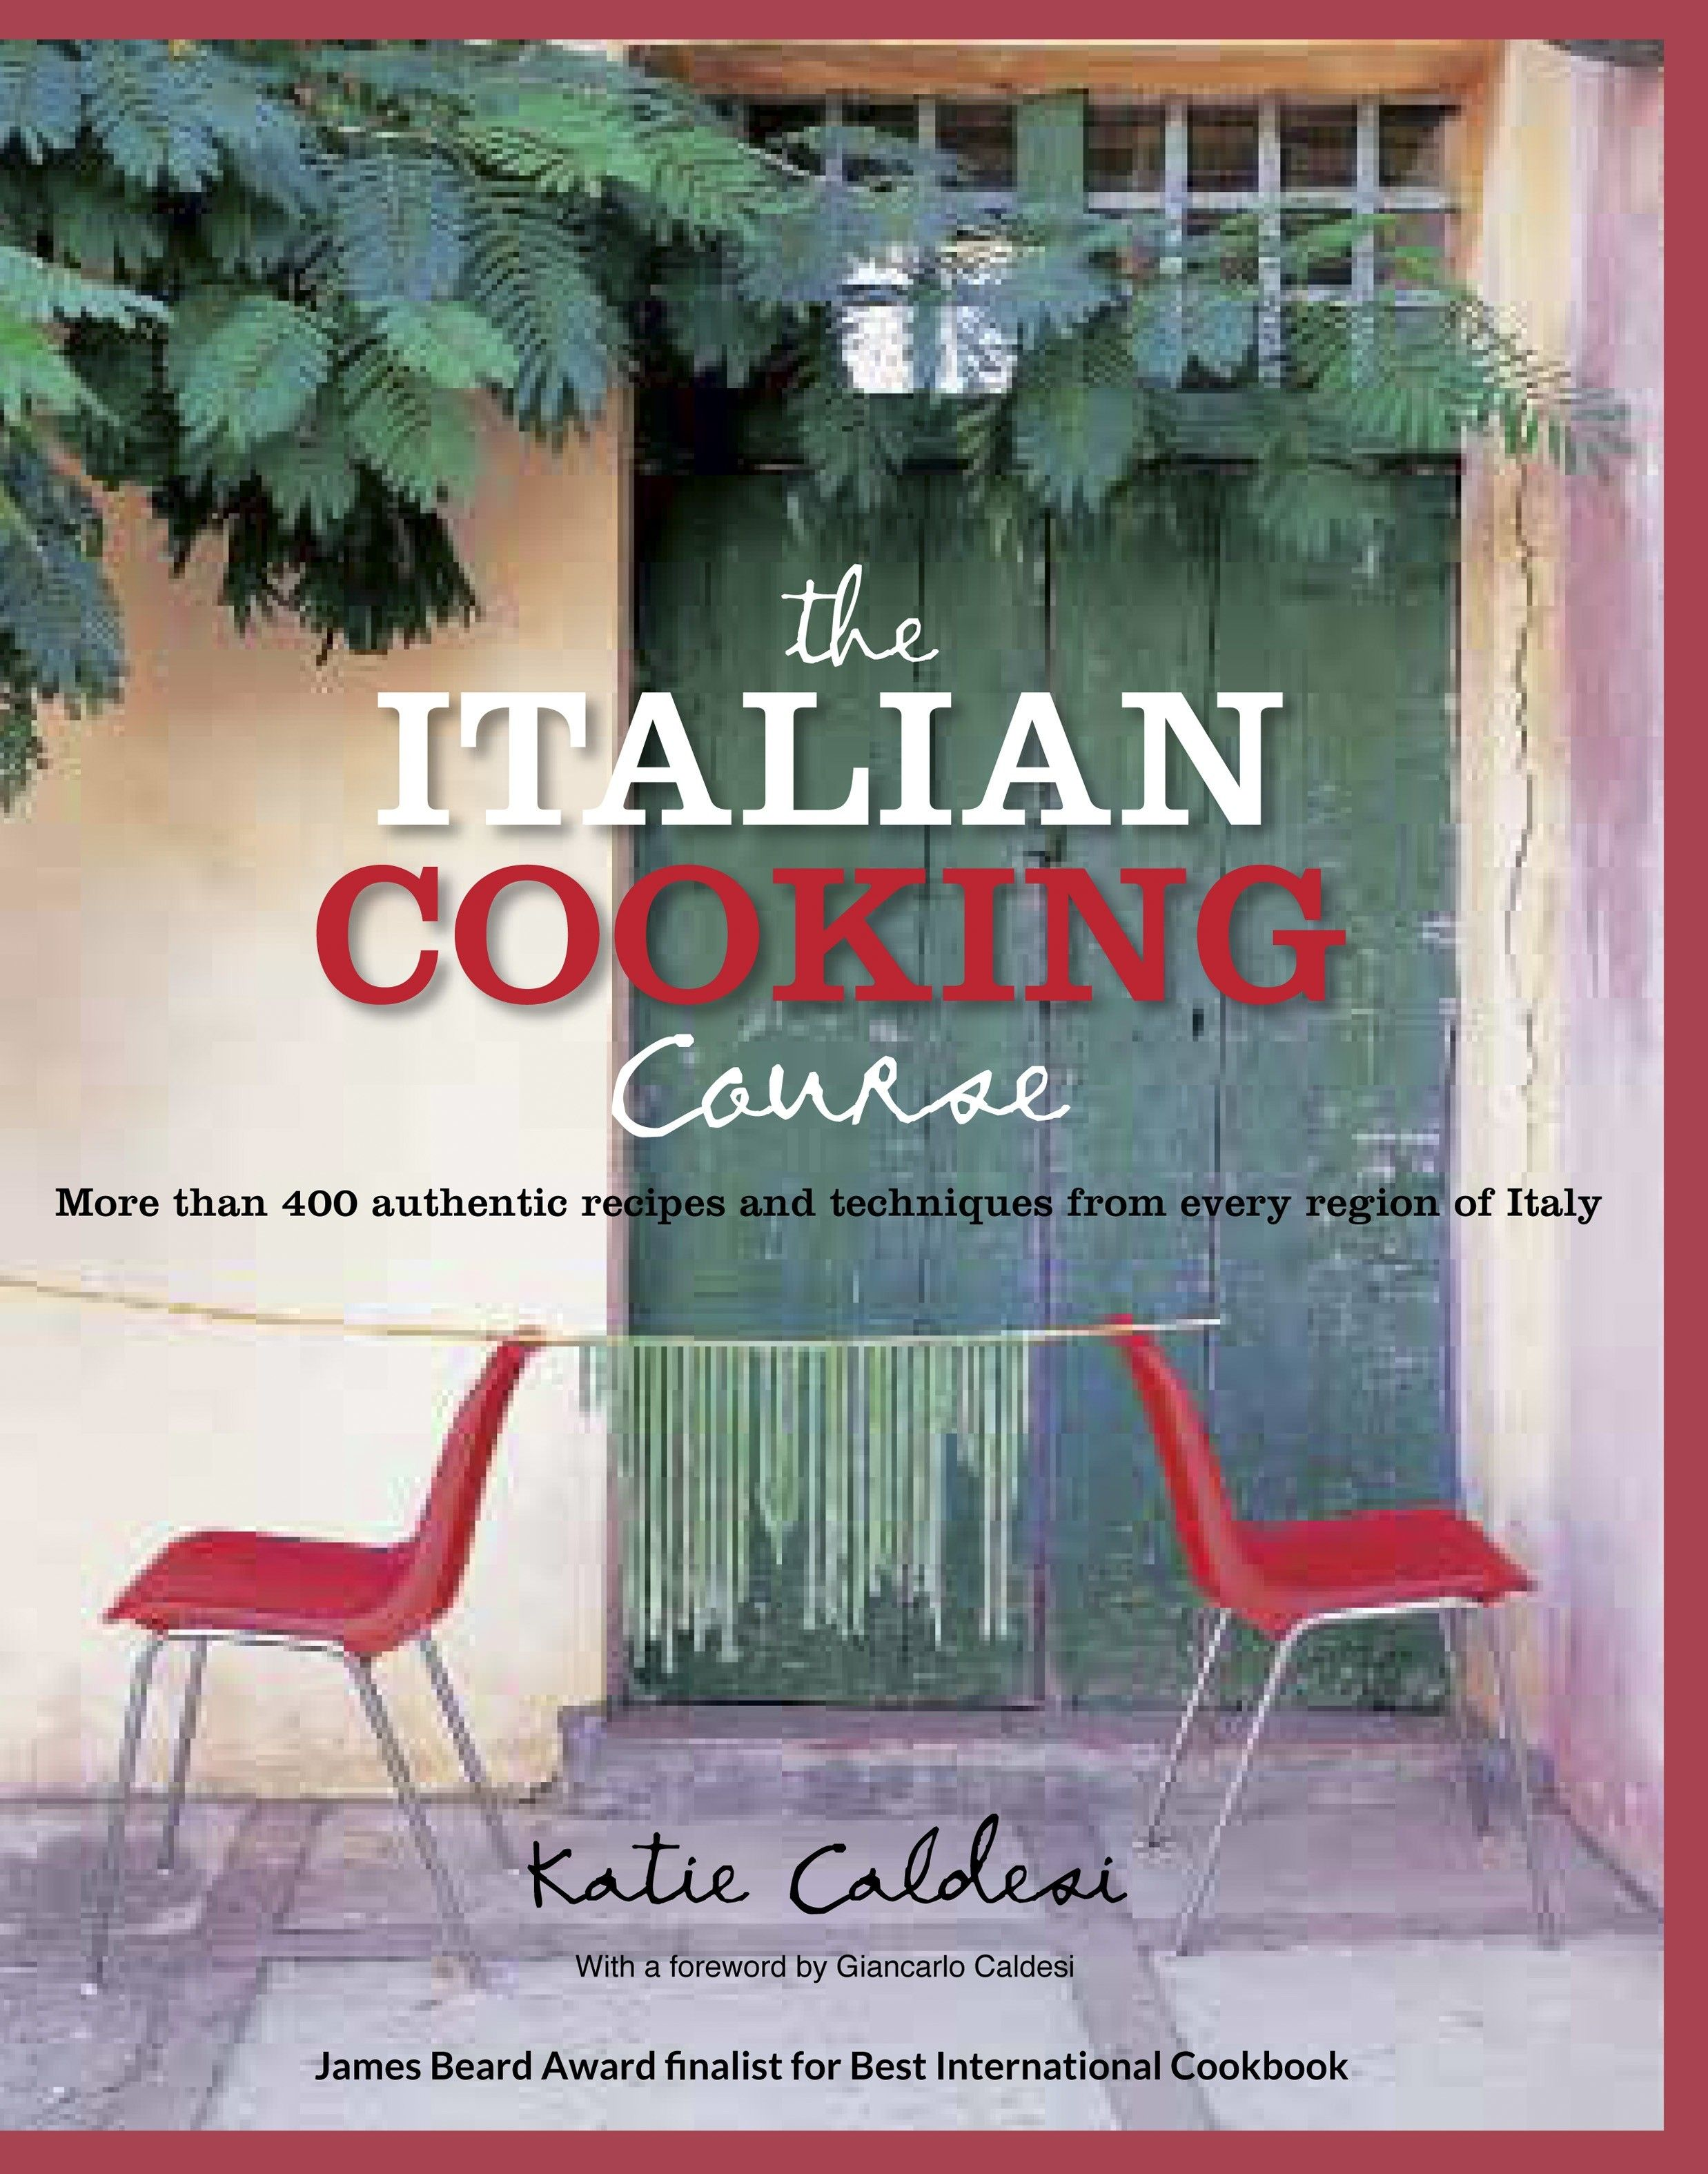 Cook Like An Italian With 400 Authentic Italian Recipes For Anitpasi Dolci And Everything In Between Italian Cooking Italian Cooking School Cooking Courses